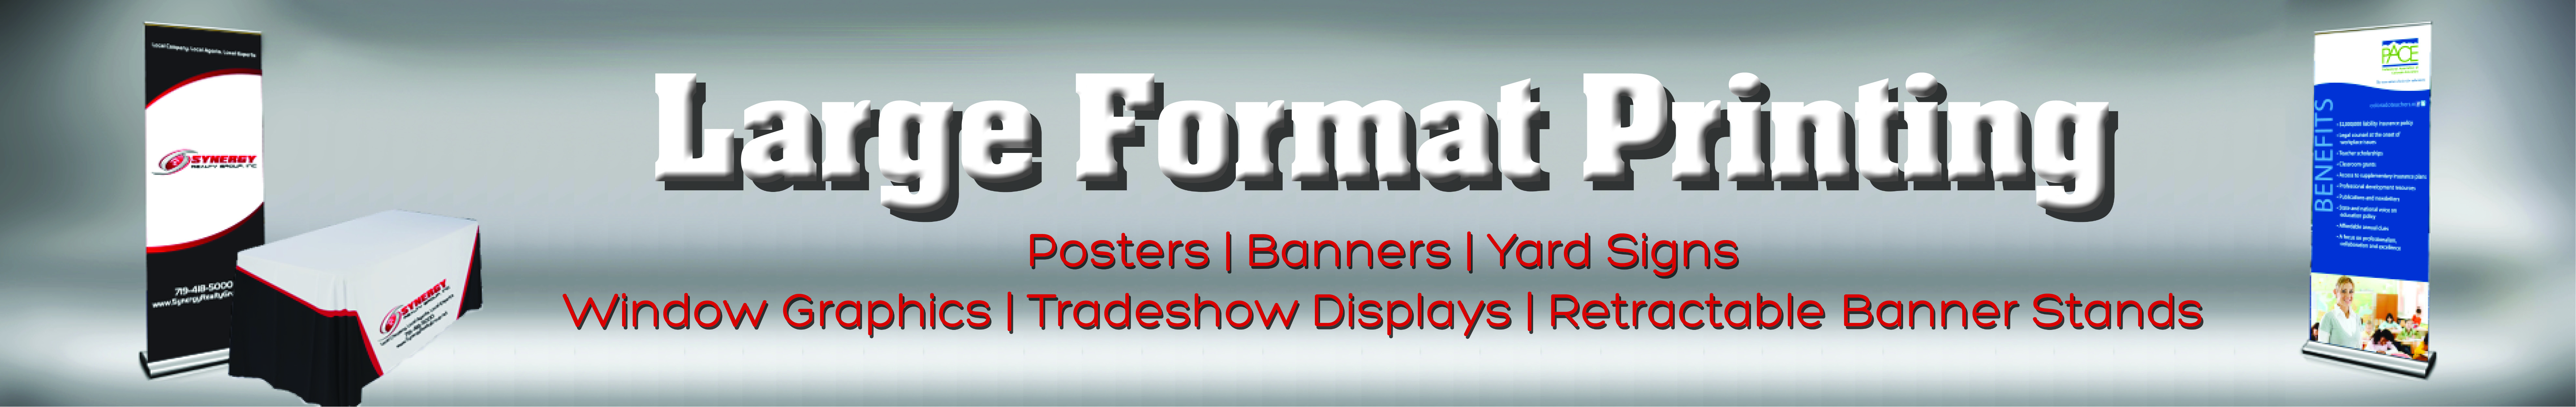 Large Format Printing - Posters | Banners | Yar Signs | Window Graphics | Trade Show Displays | Retractable Banner Stands